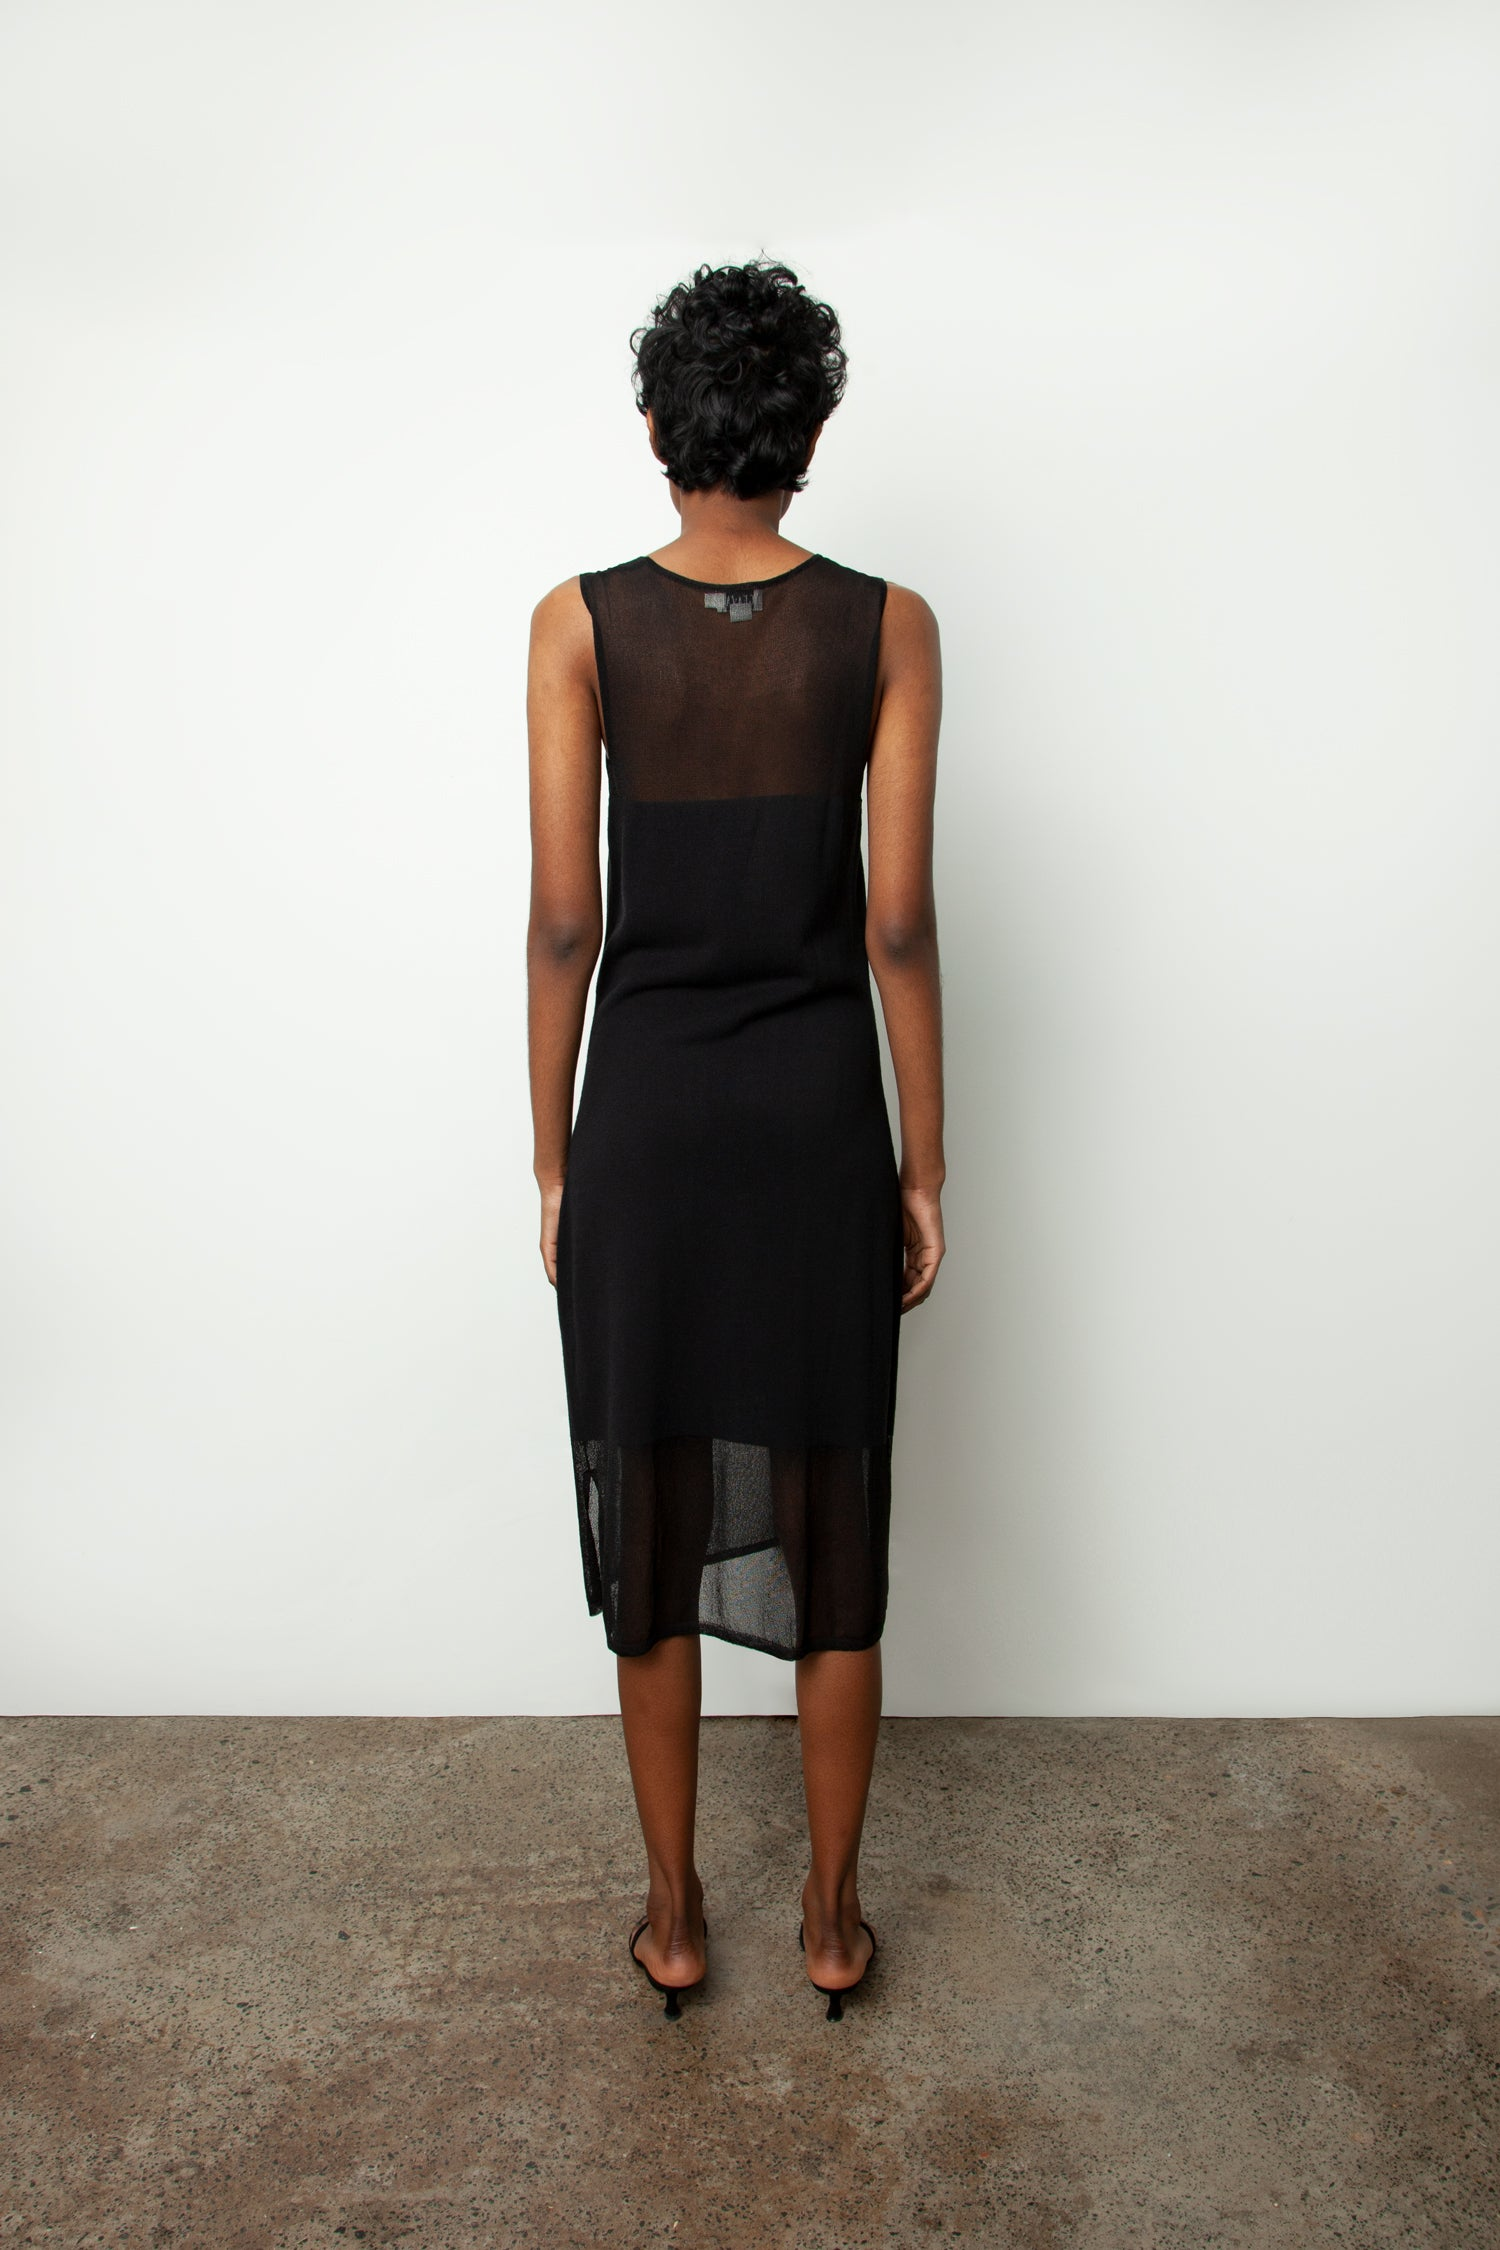 SHEER PANEL KNIT DRESS